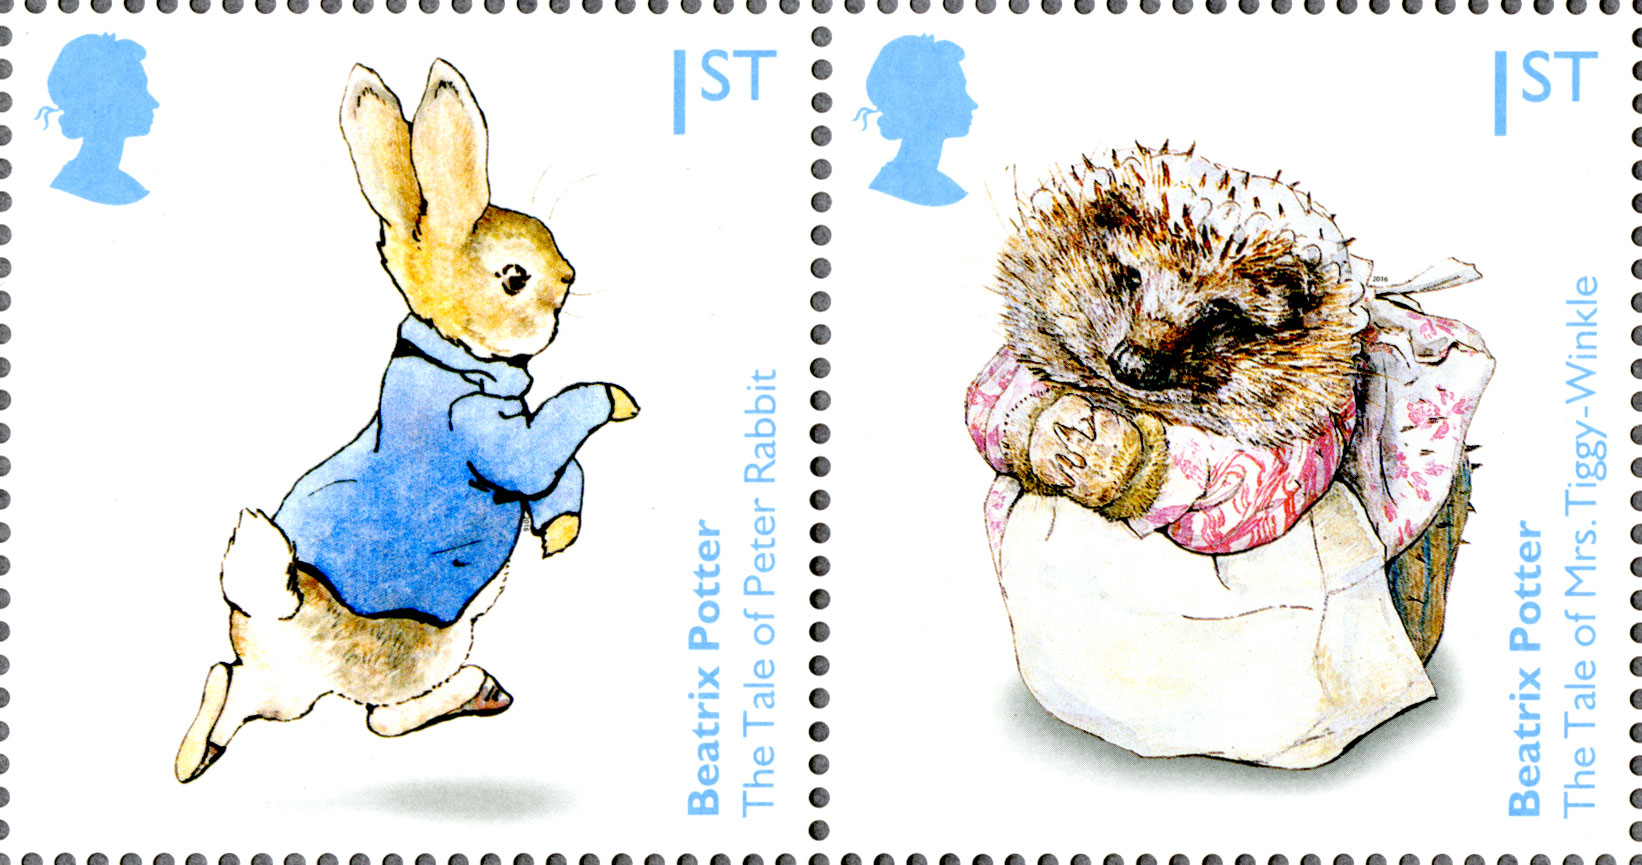 Two stamps depicting illustration of characters from children's books by Beatrix Potter.